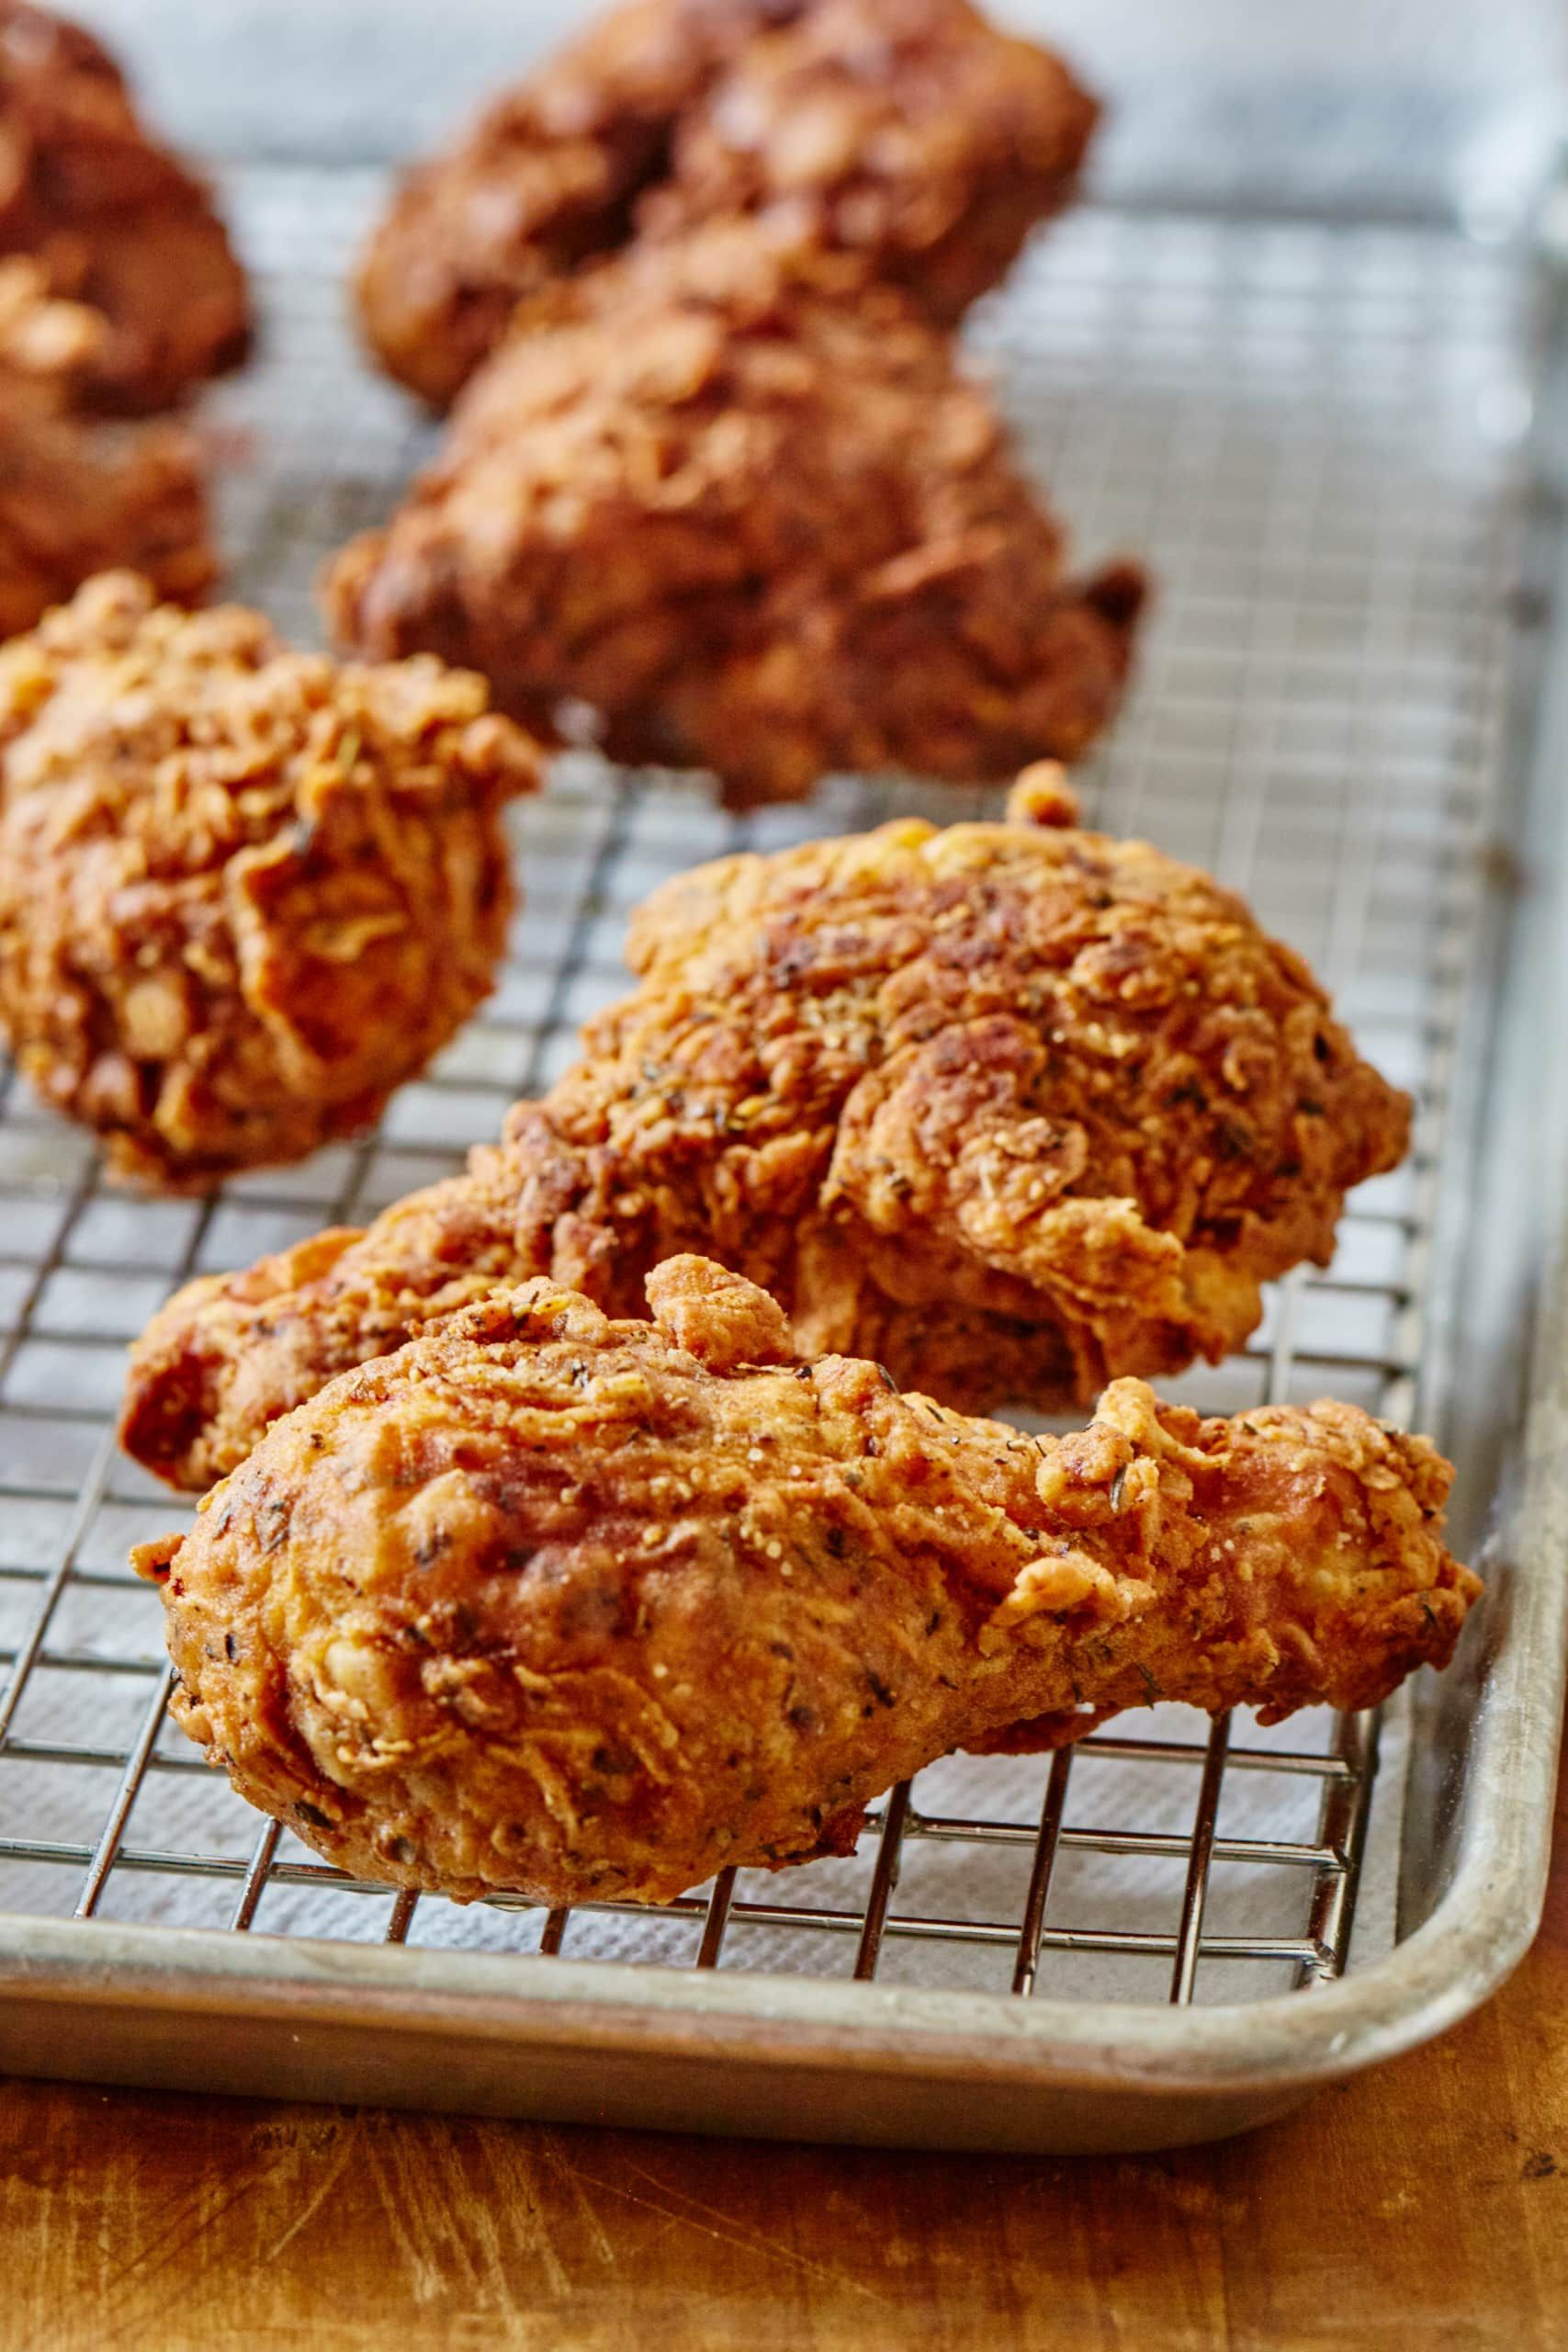 How To Make Crispy, Juicy Fried Chicken (That's Better